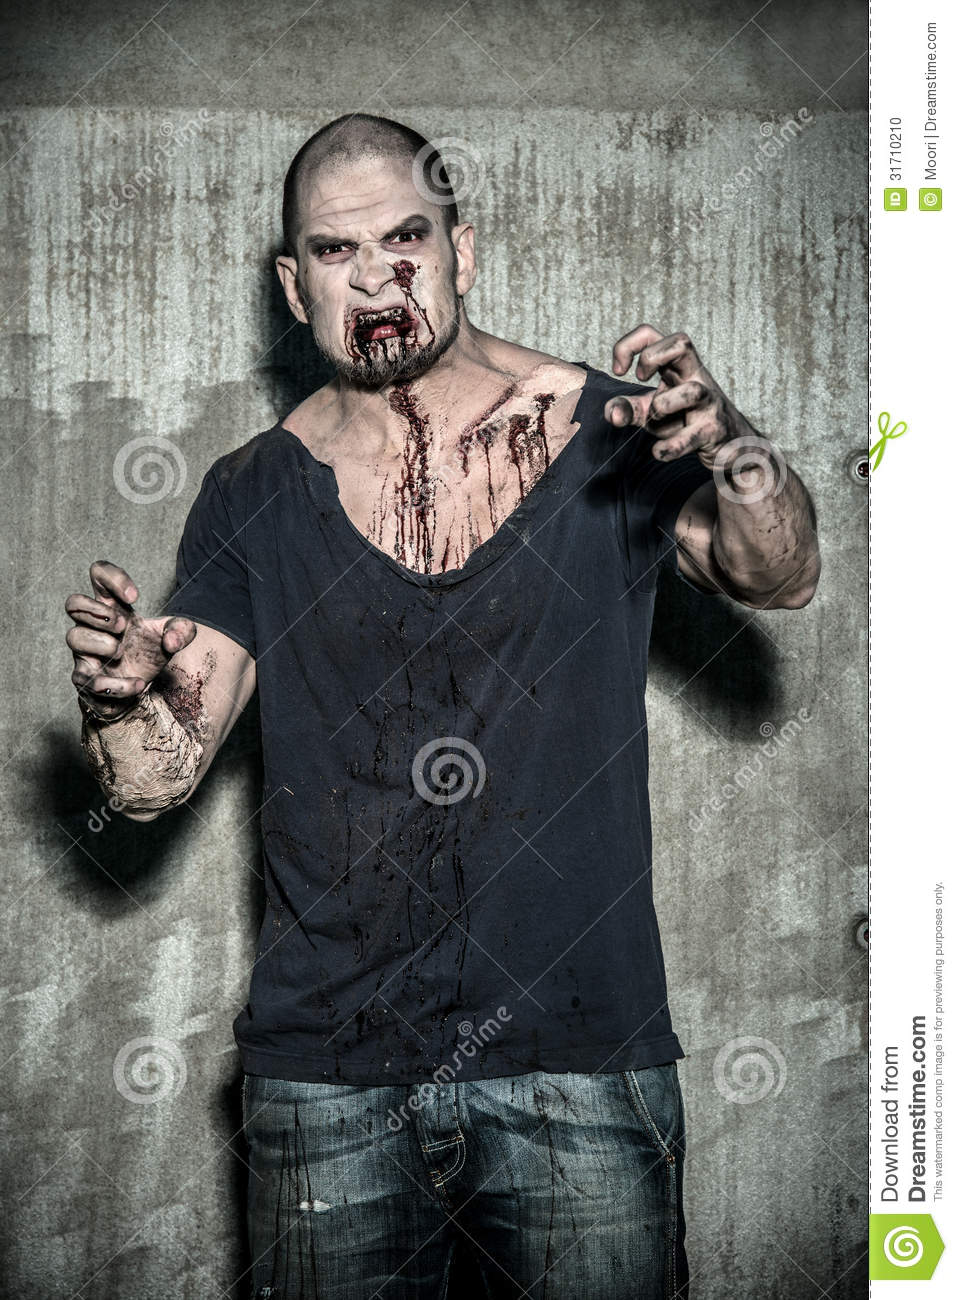 Scary And Bloody Zombie Man Stock Photo - Image: 31710210